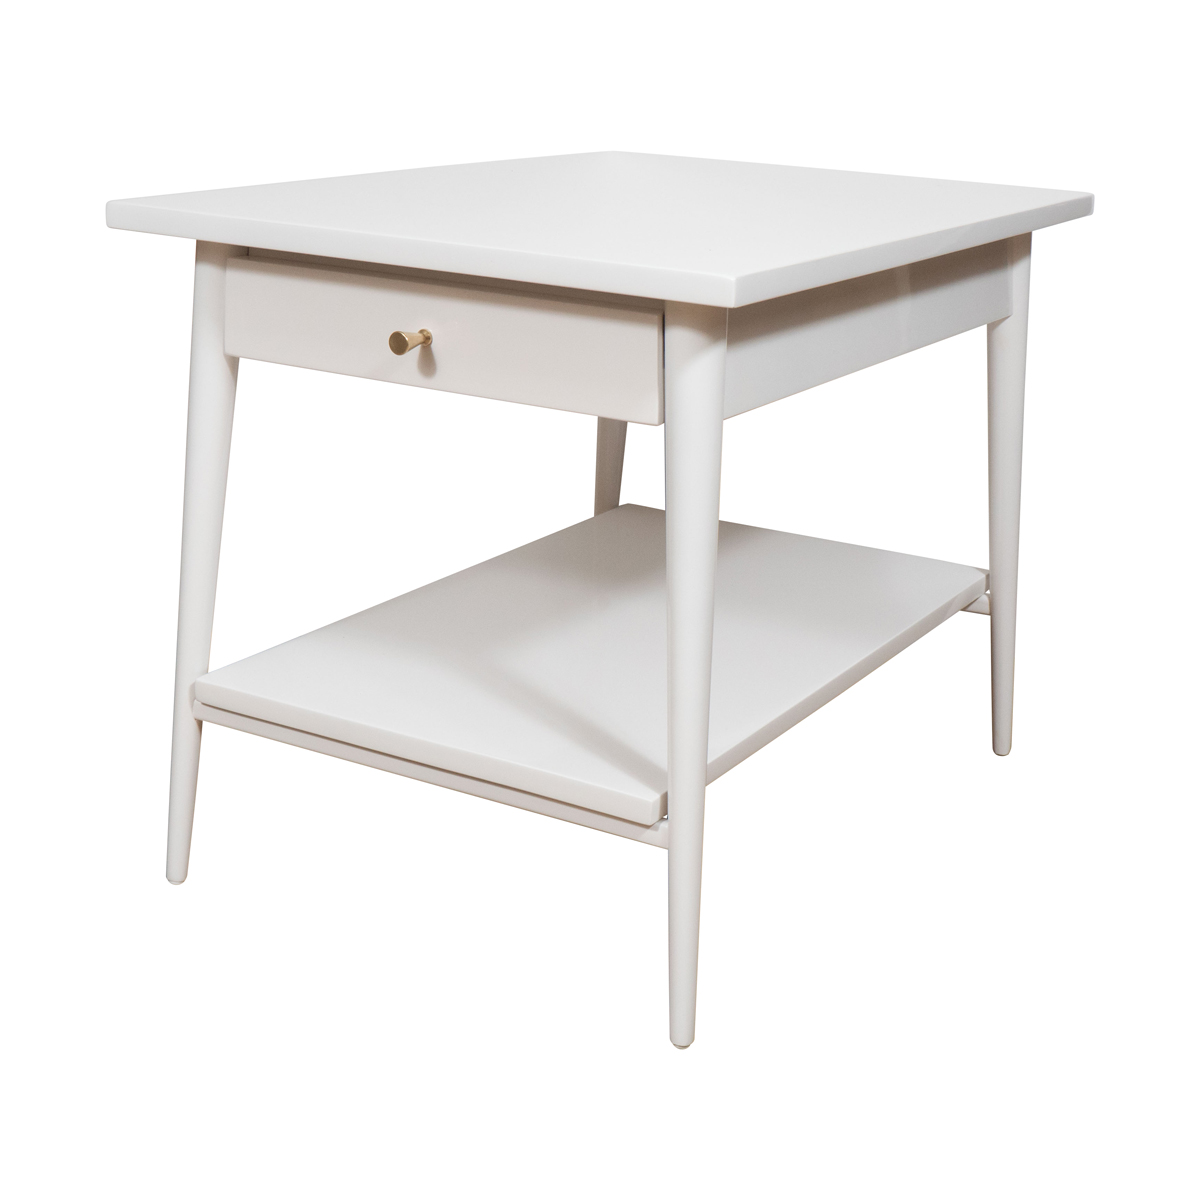 Pair Of White Lacquered Wood Side Tables